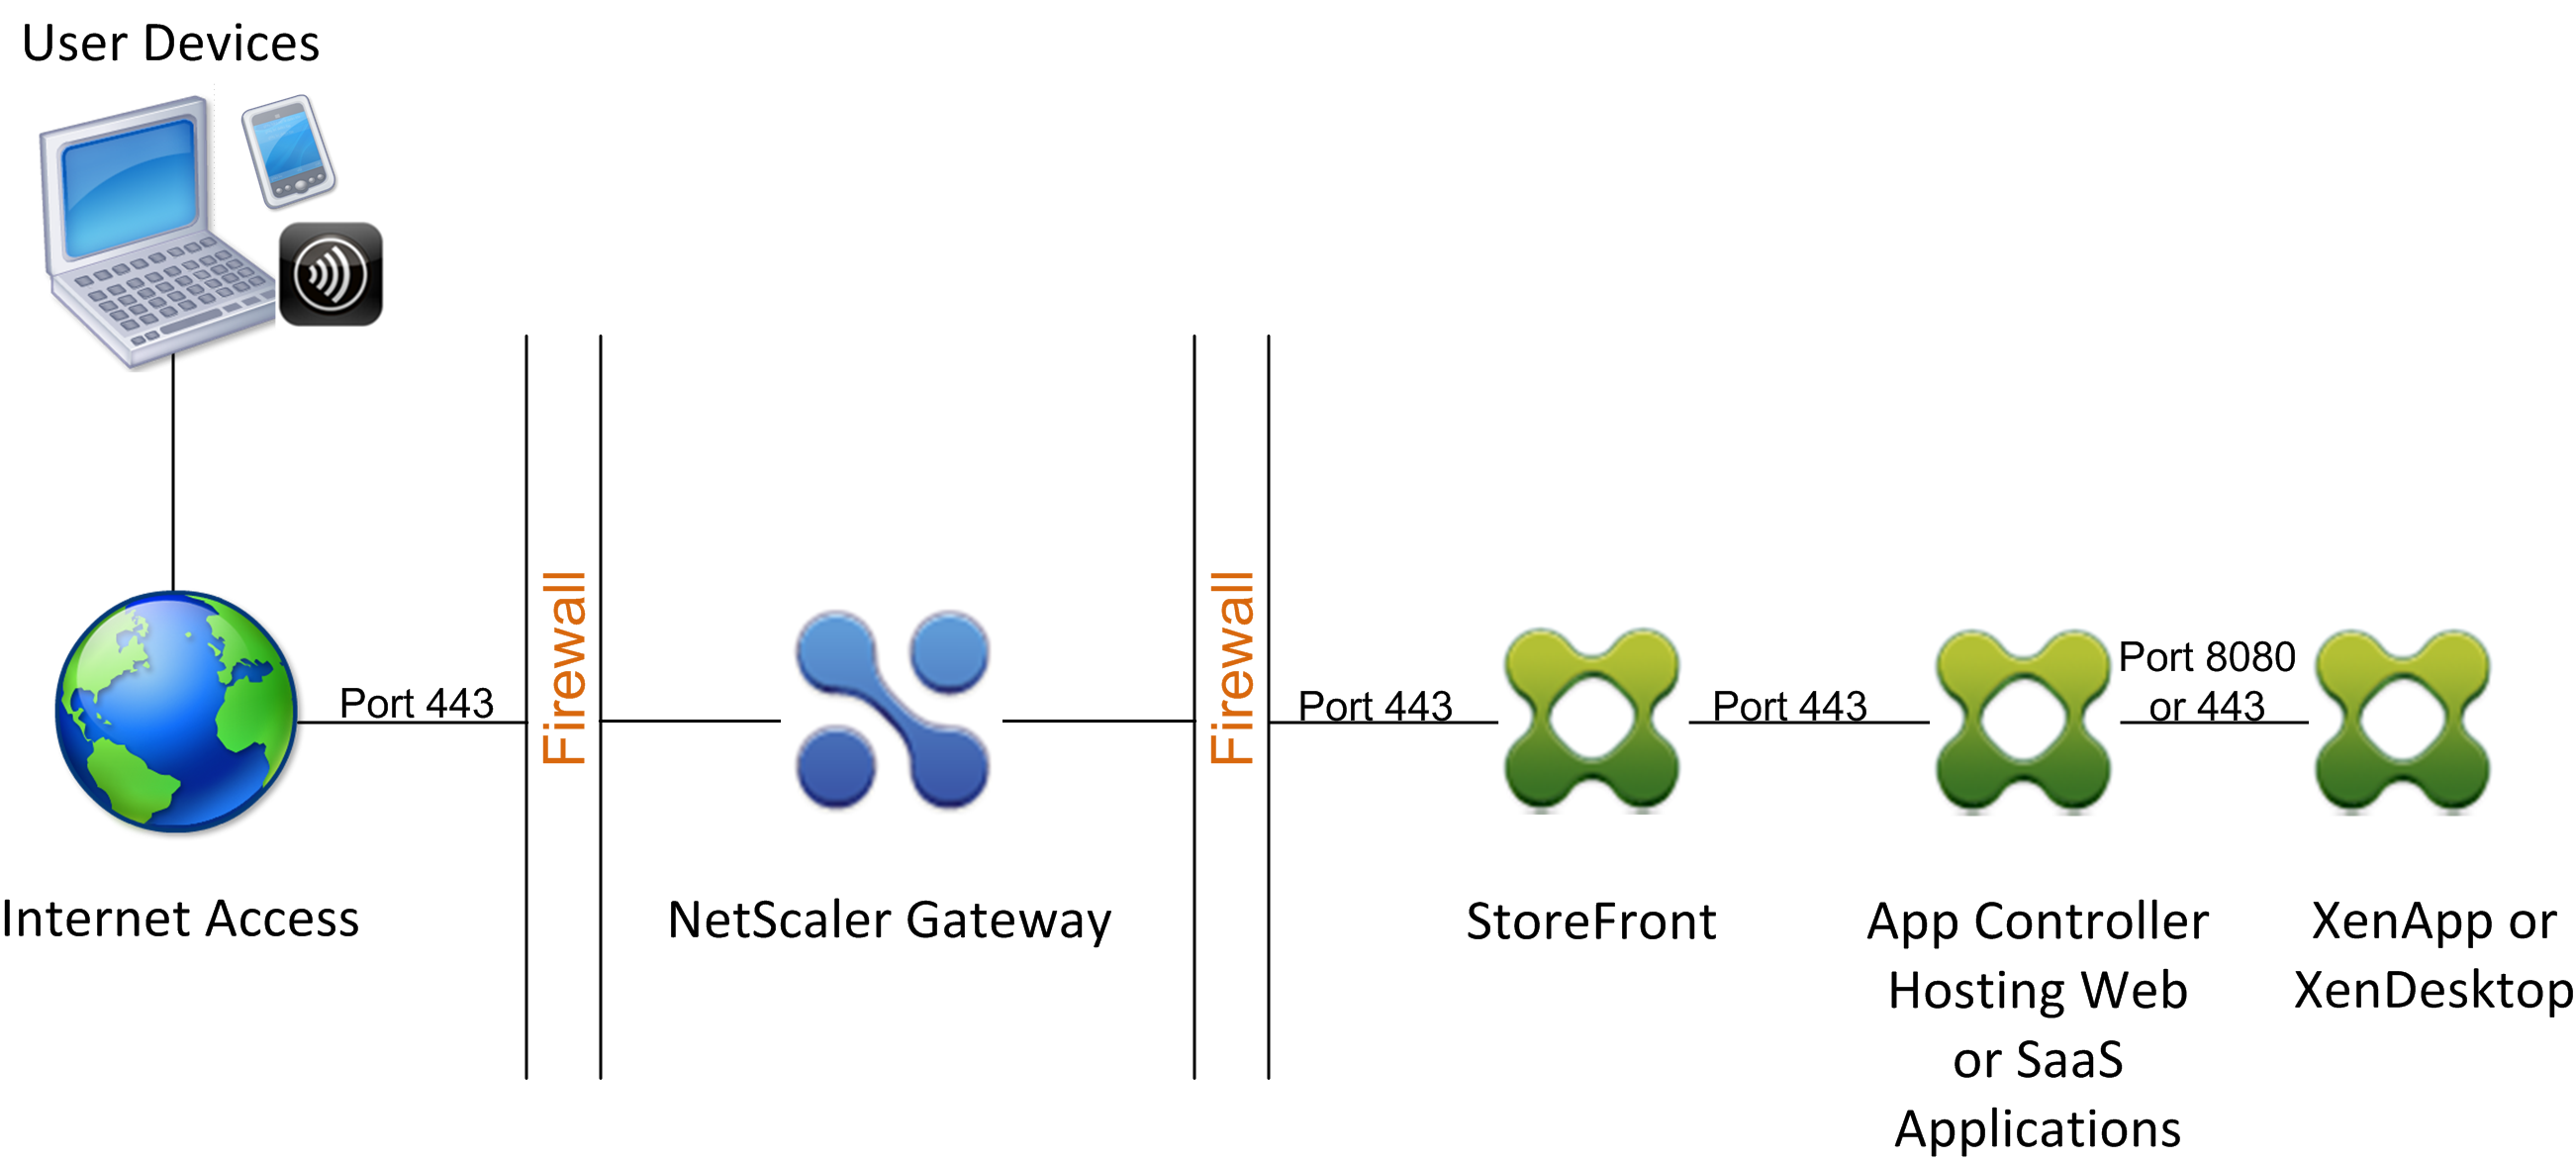 Deploying NetScaler Gateway with StoreFront in Front of App Controller